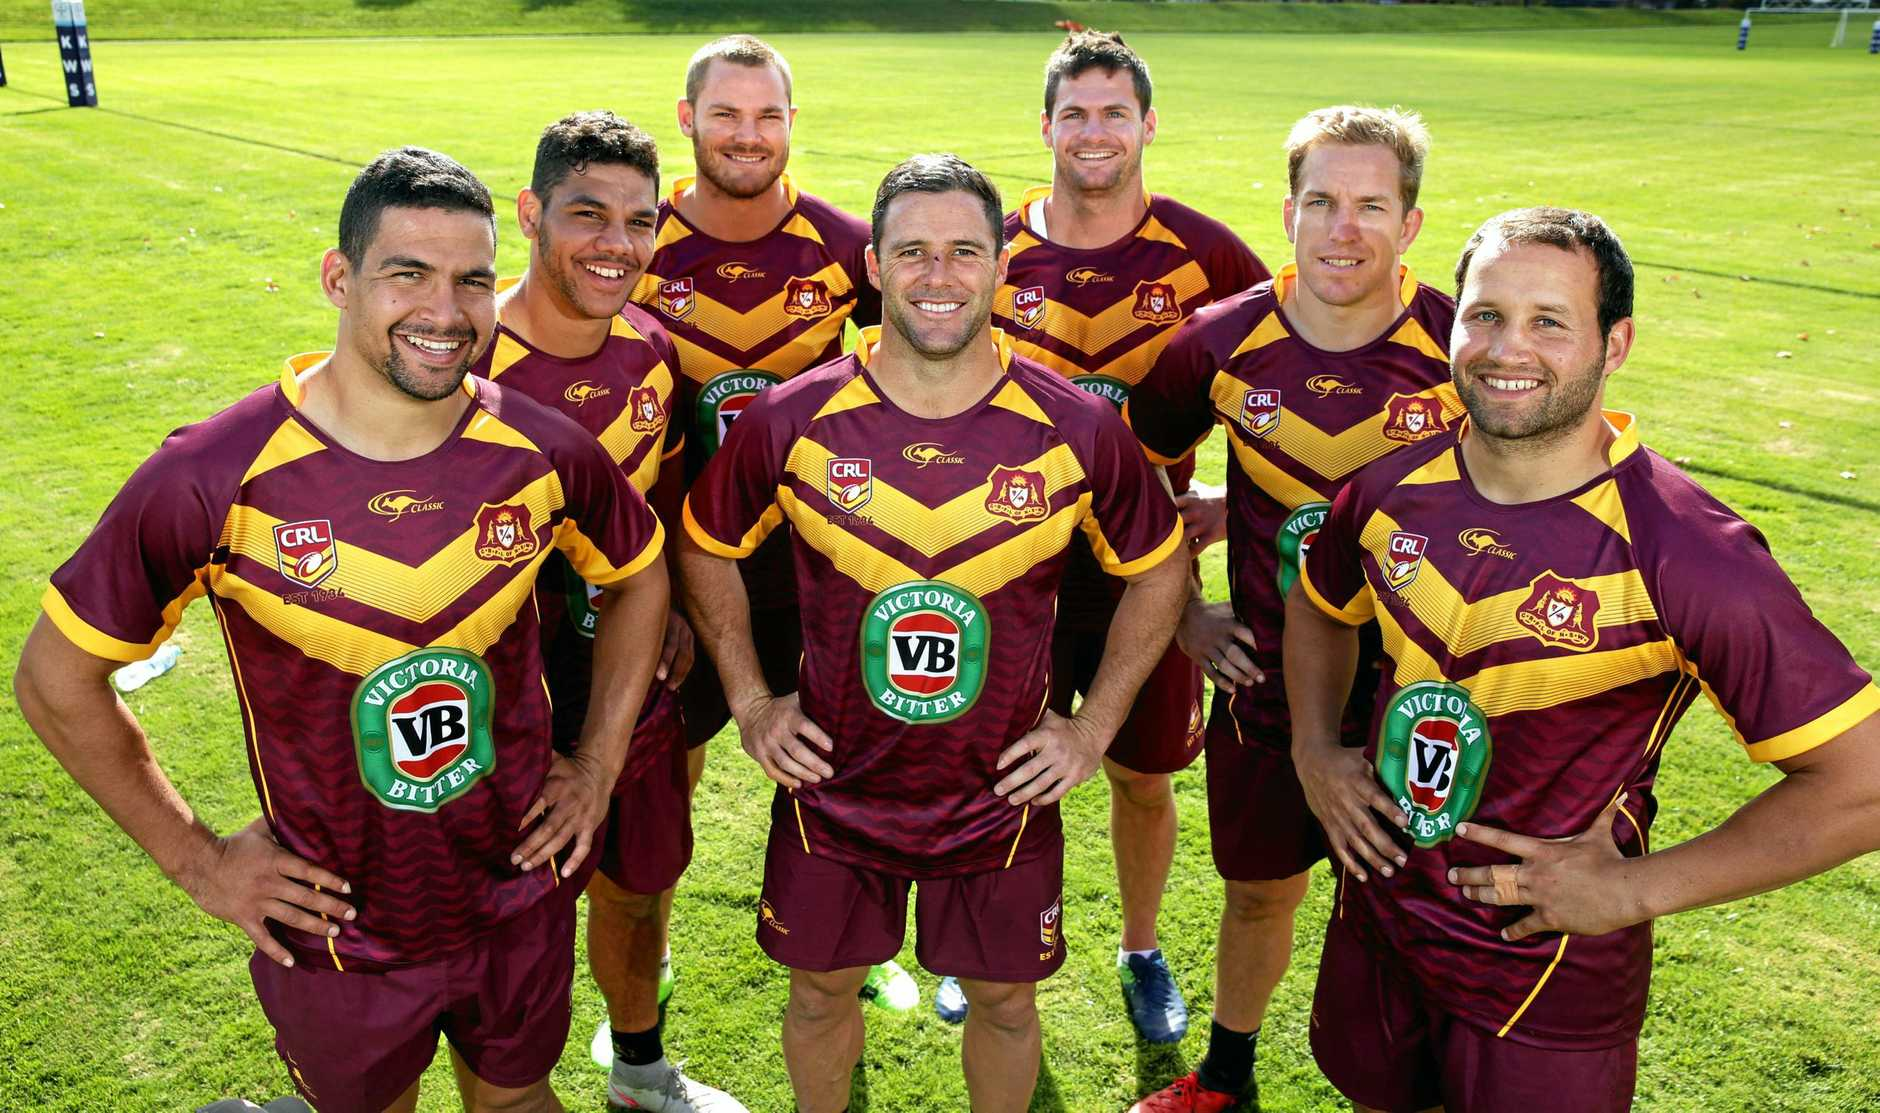 HISTORIC ITEM: The CRL's gold and maroon jersey could soon be retired after a merger with the NSWRL.